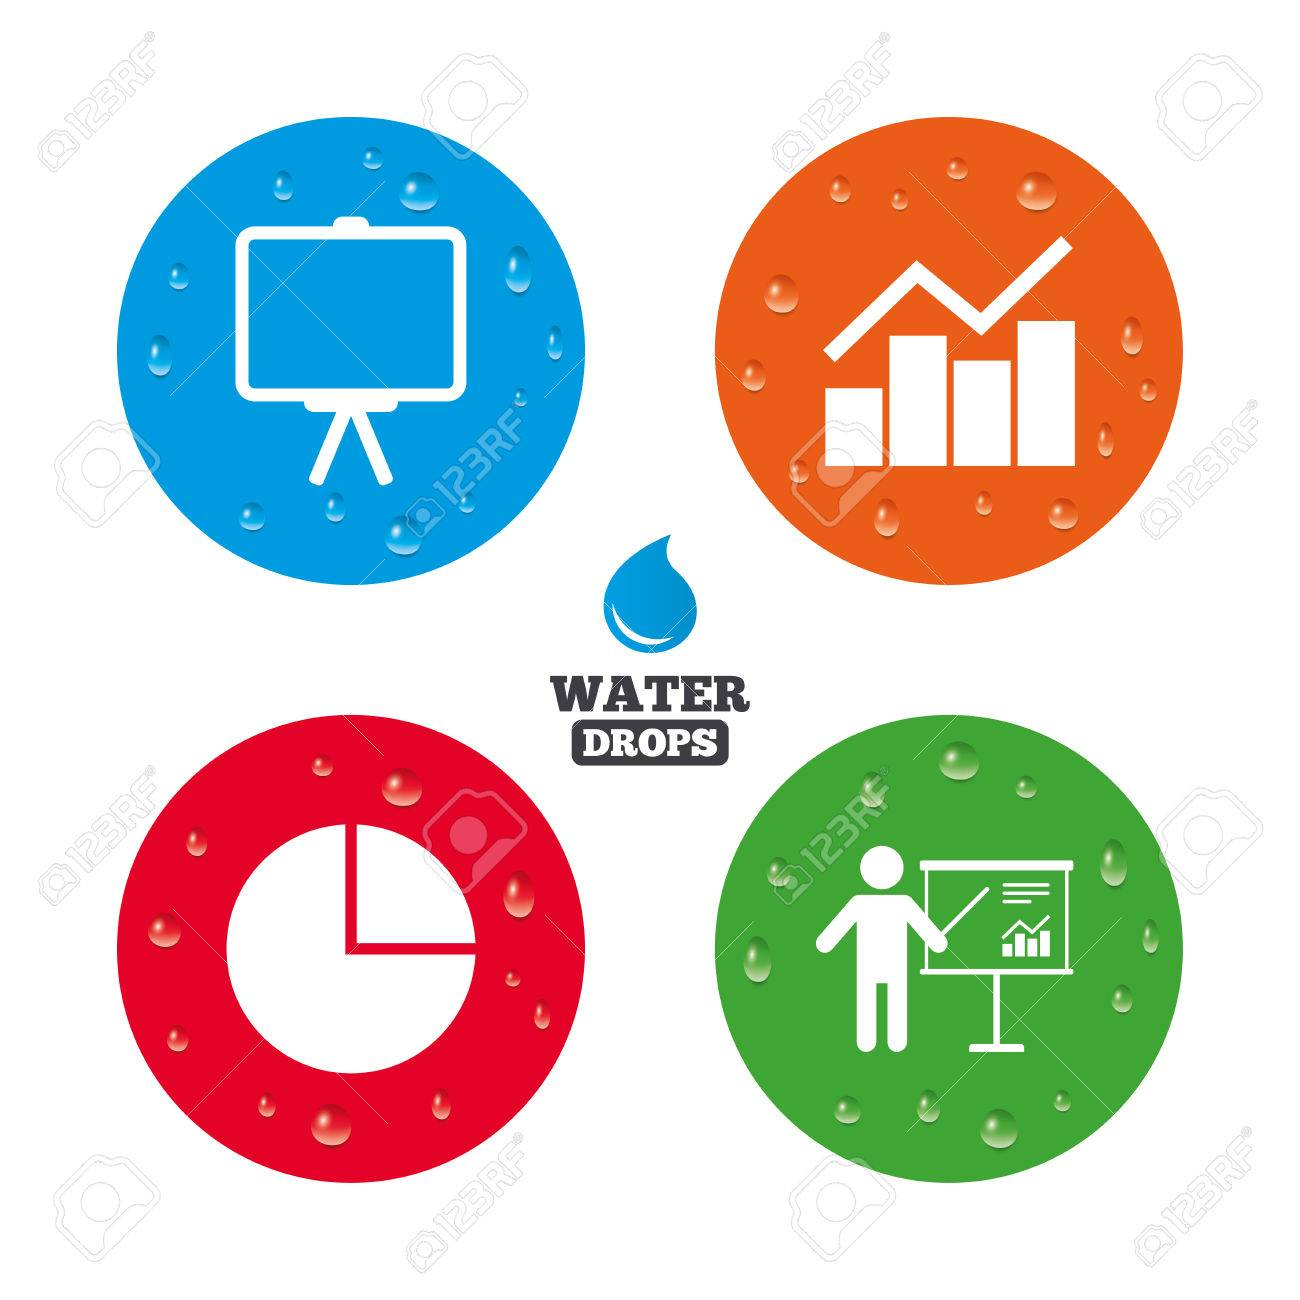 Water drops on button diagram graph pie chart icon presentation vector water drops on button diagram graph pie chart icon presentation billboard symbol man standing with pointer sign realistic pure raindrops on ccuart Choice Image